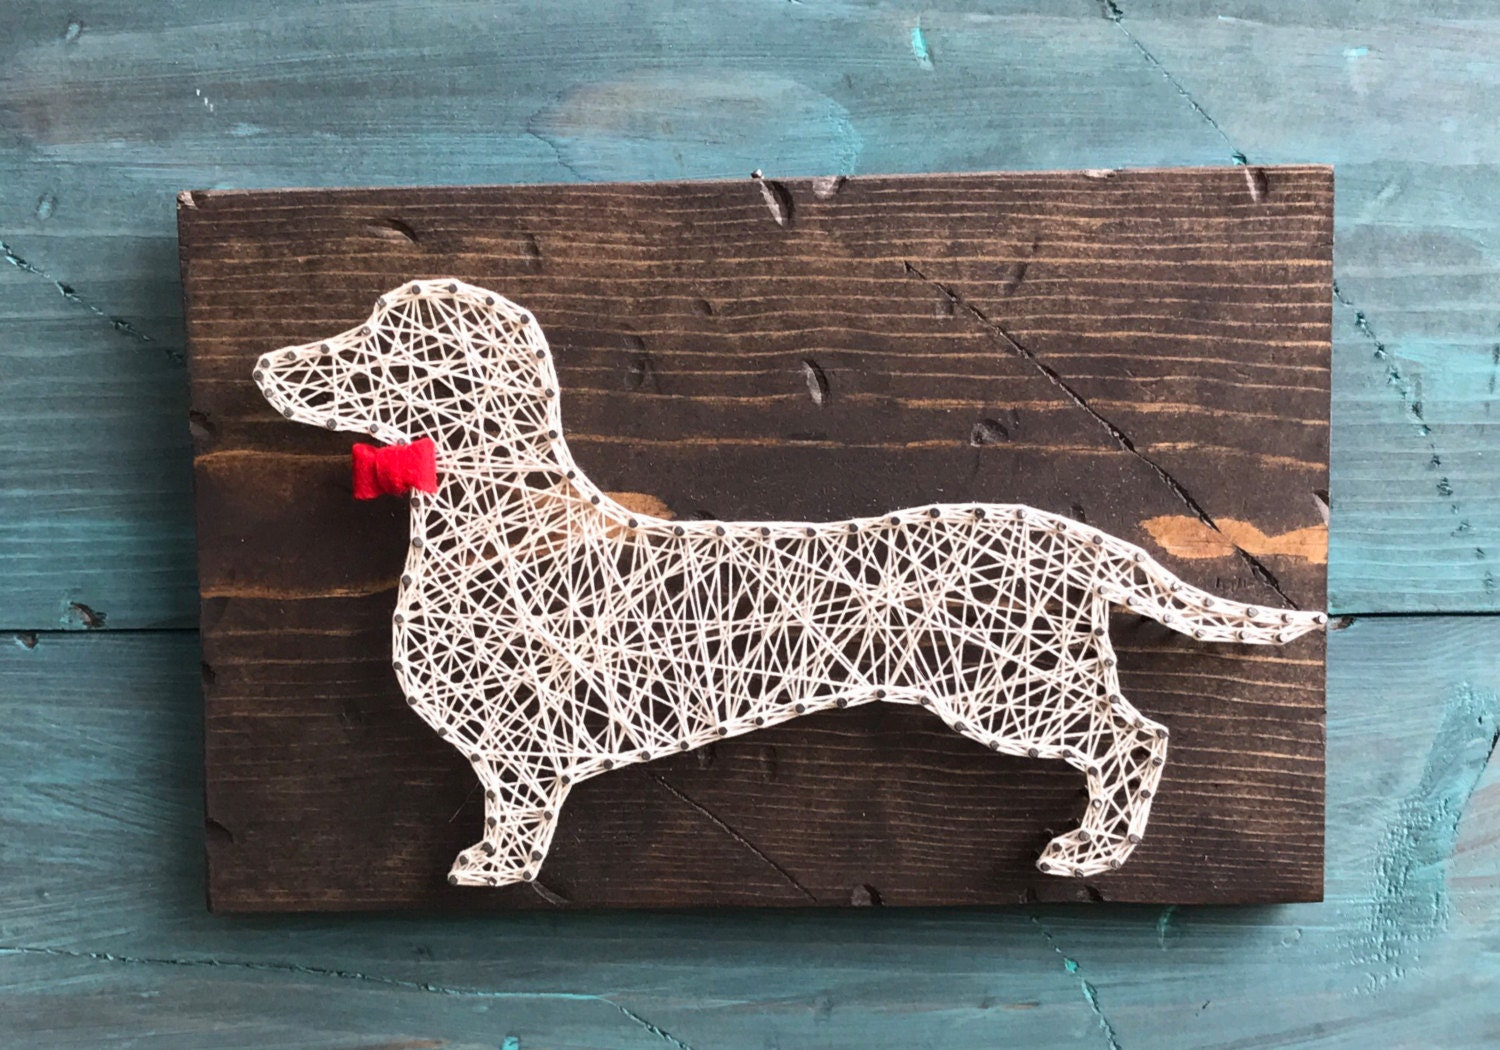 Dachshund Home Decor Pineapple String Art Wall Art String Art Rustic Home Decor